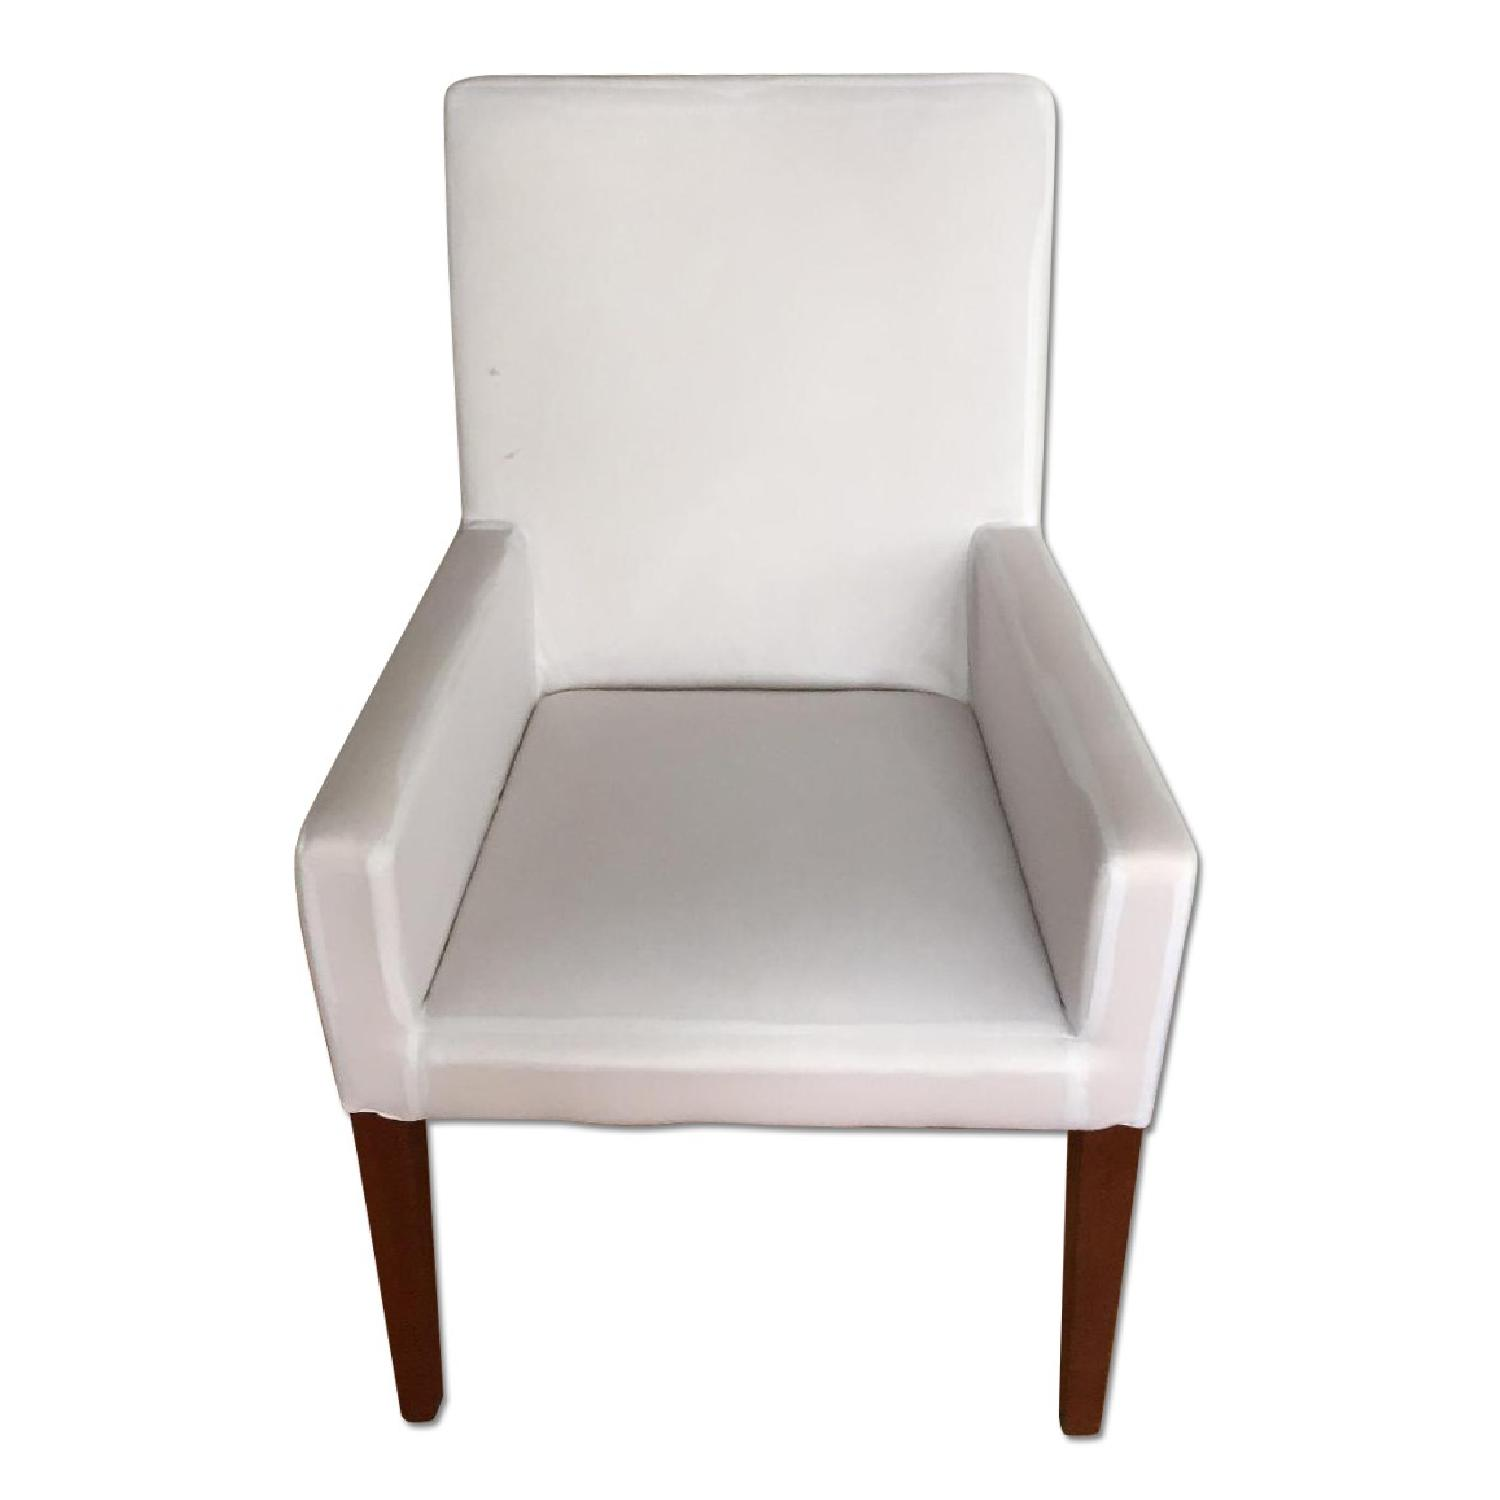 Pottery Barn Cooper Arm Chair w/ Natural Slipcover - image-0